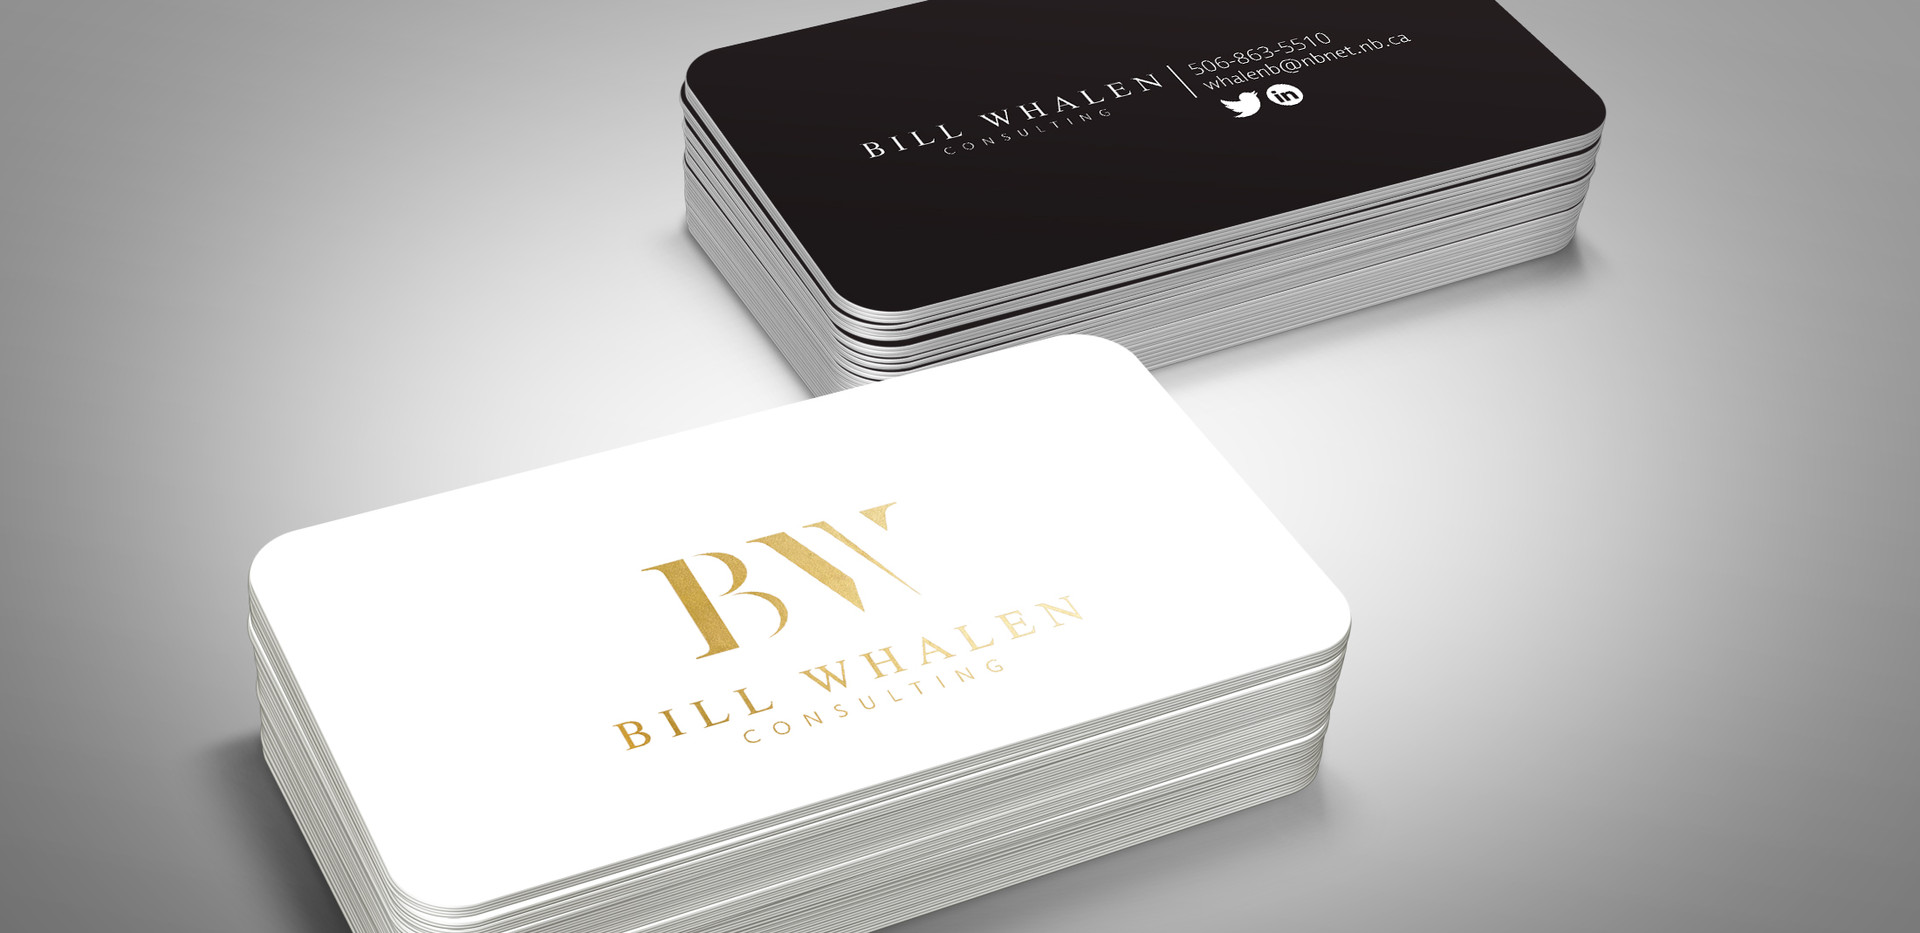 Bill Whalen Consulting | Business Card design